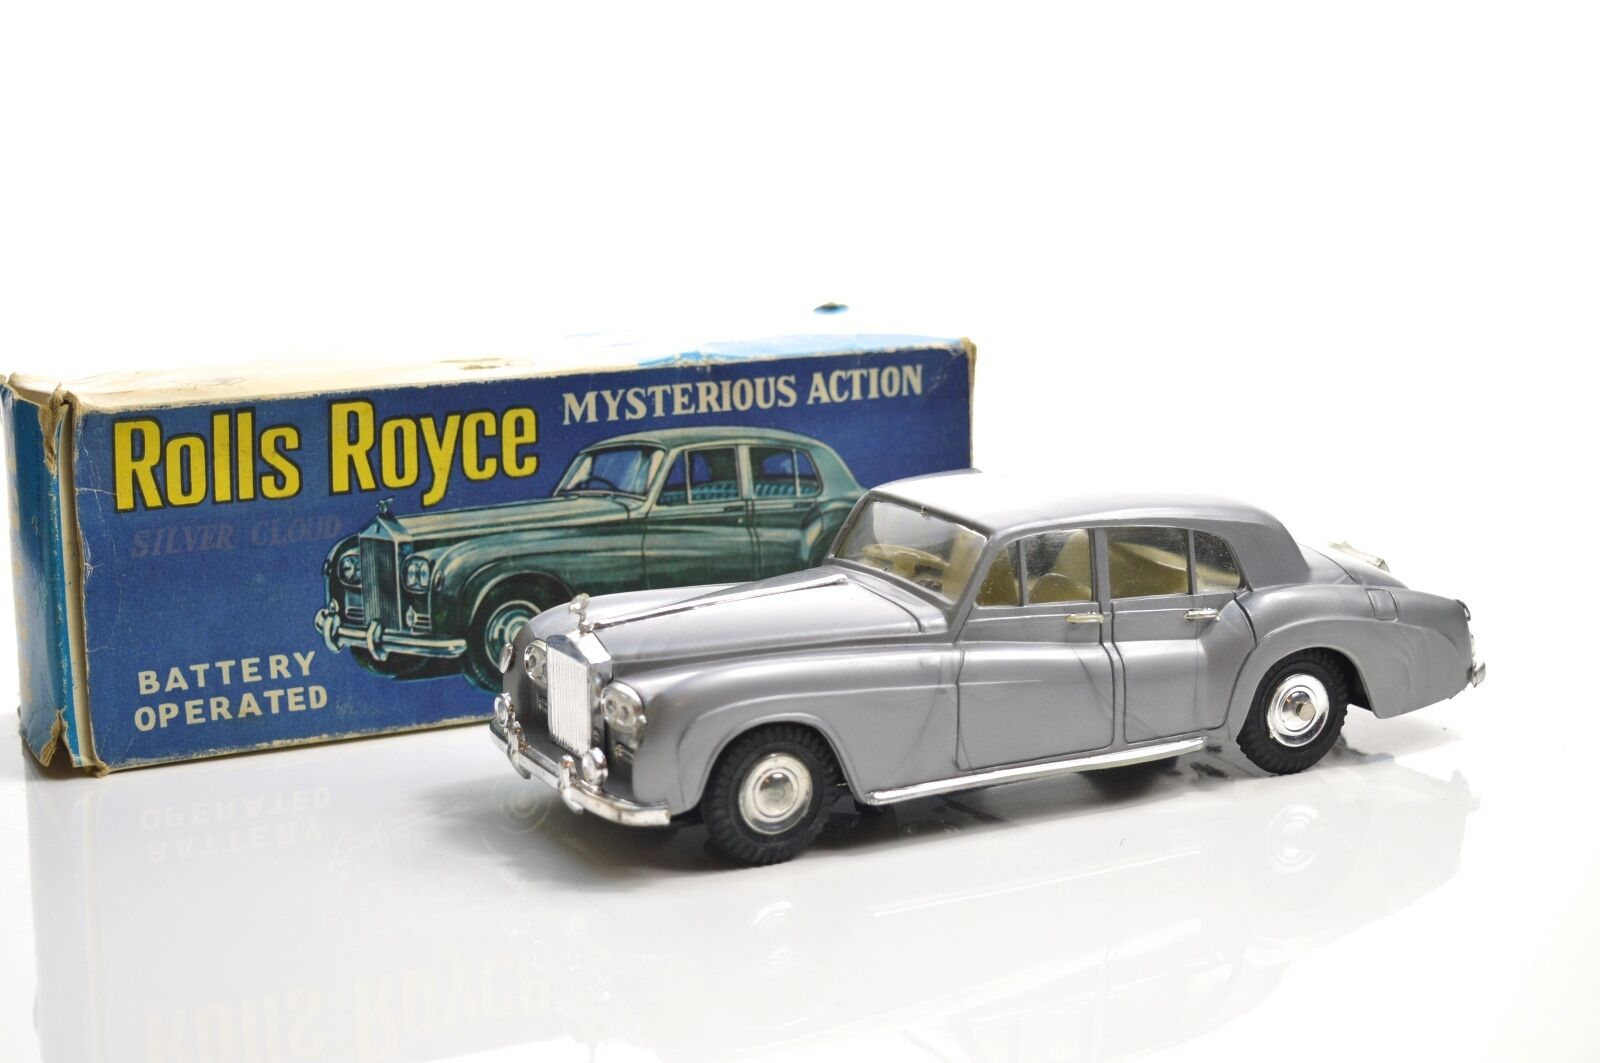 ACME ROLLS ROYCE MYSTERY ACTION